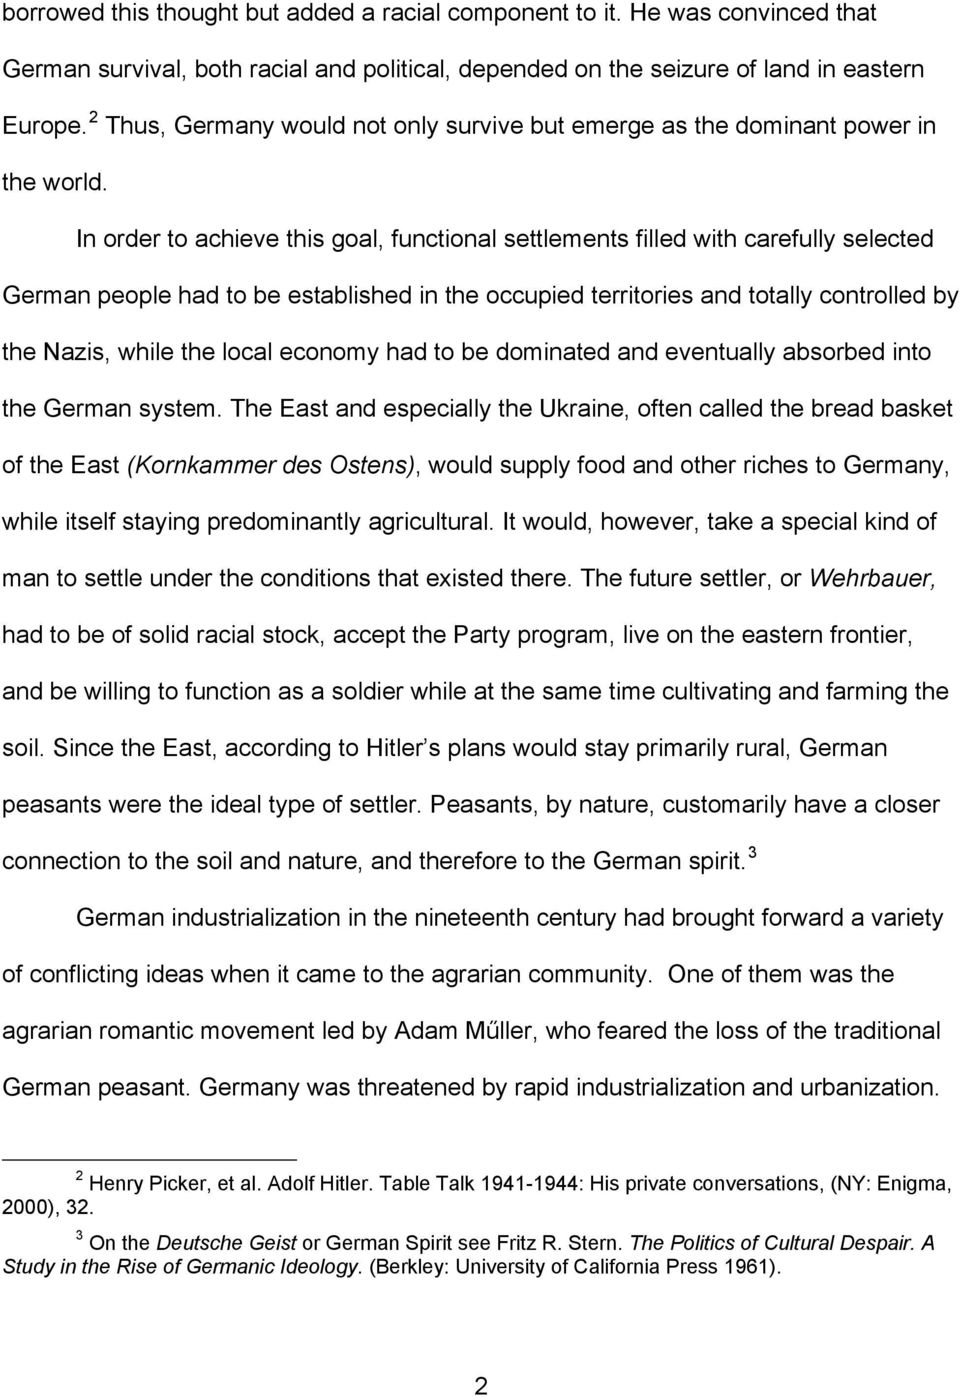 In order to achieve this goal, functional settlements filled with carefully selected German people had to be established in the occupied territories and totally controlled by the Nazis, while the